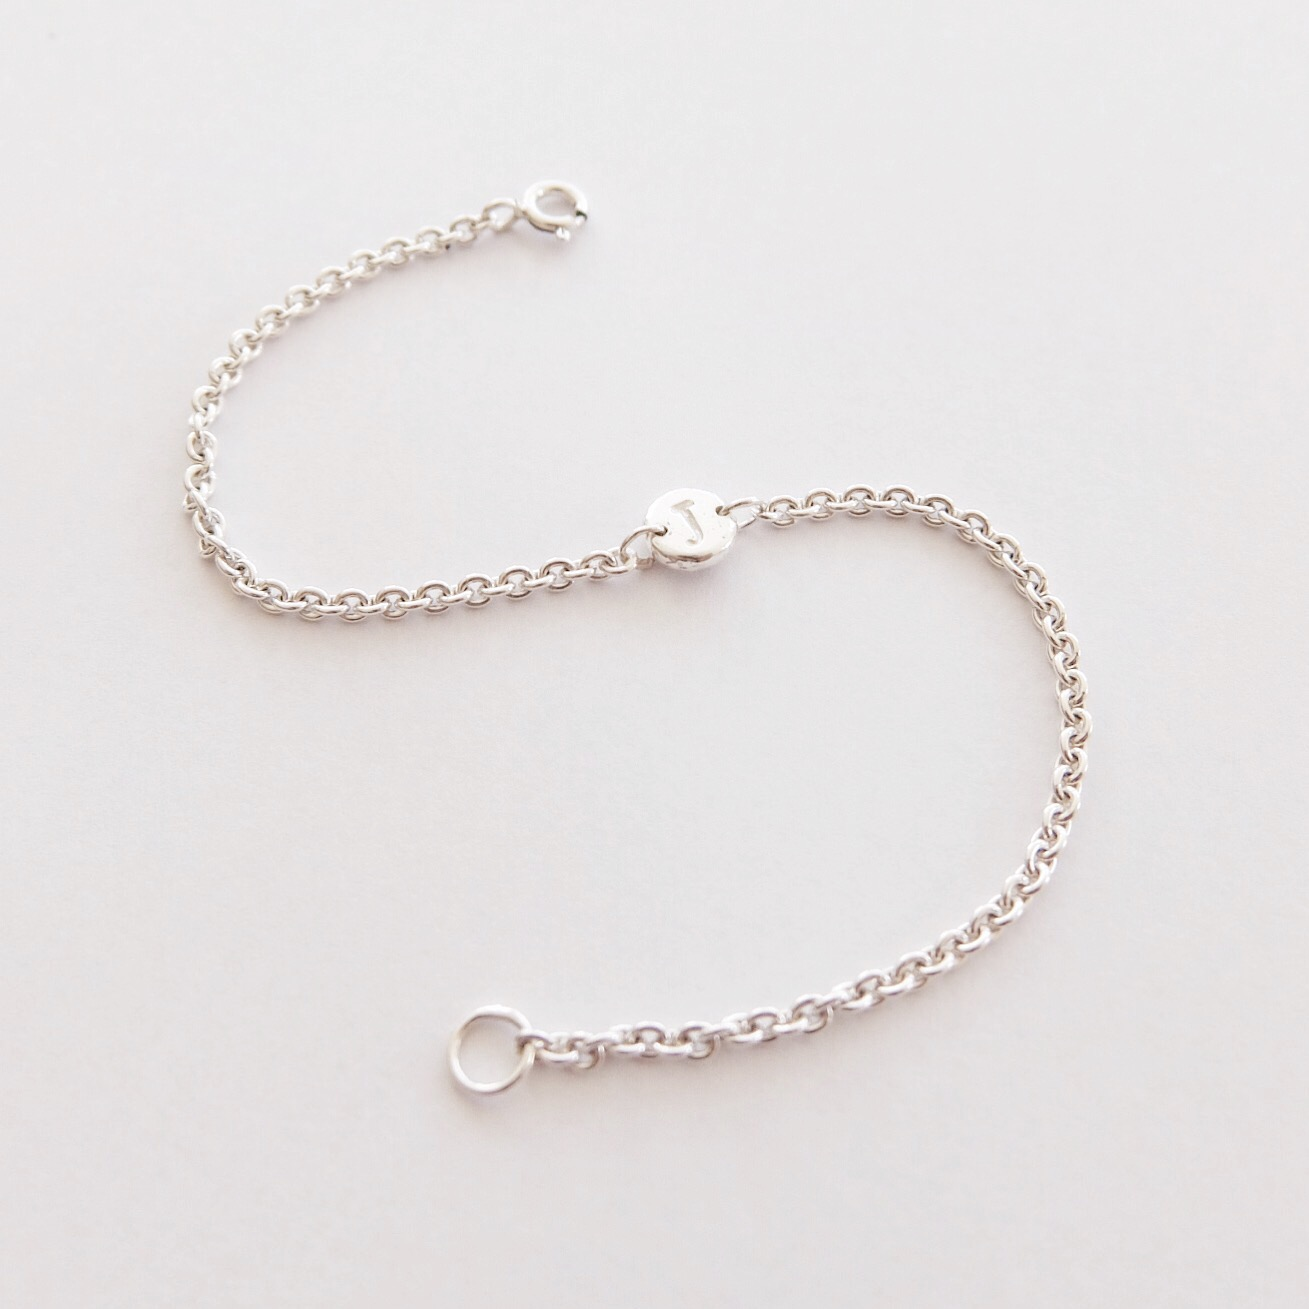 letter bracelet personalised intial jewellery gifts for her handmade jewellery made in uk devon exeter jasmine bowden sterling silver.jpg